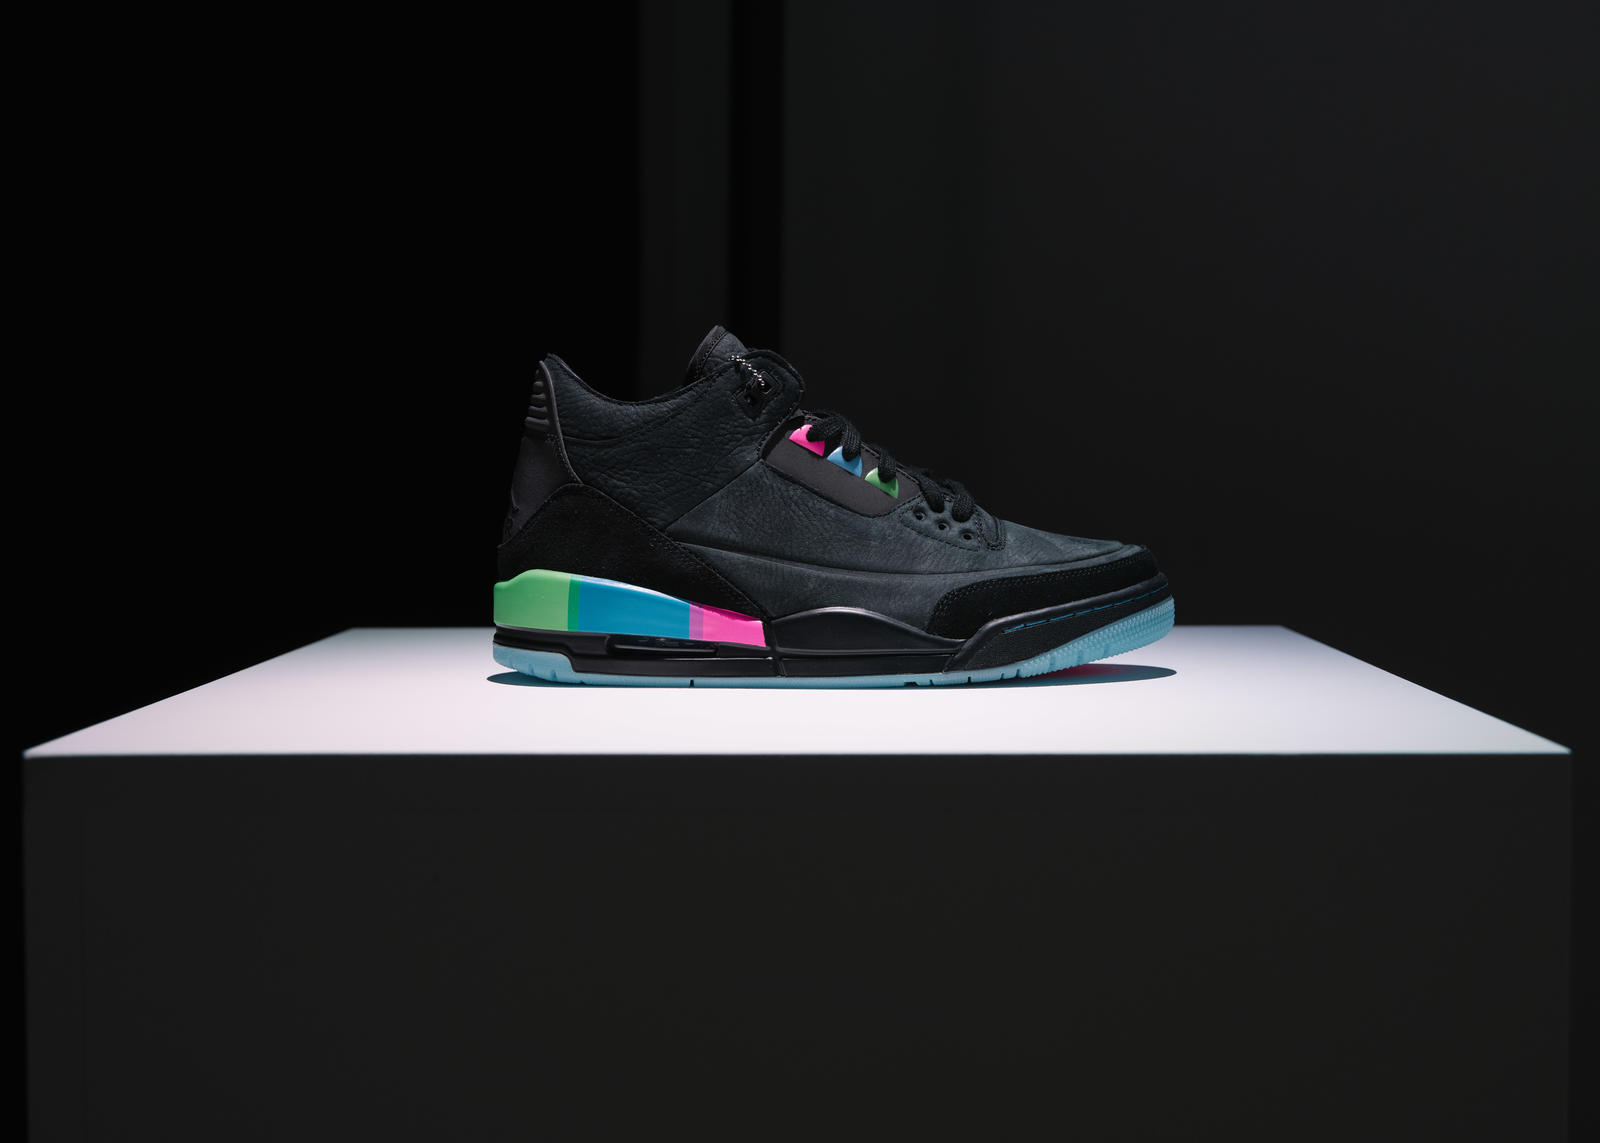 new products a687e 4b3eb The 2018 Air Jordan 3 'Quai 54' Gets the Premium SE Build ...